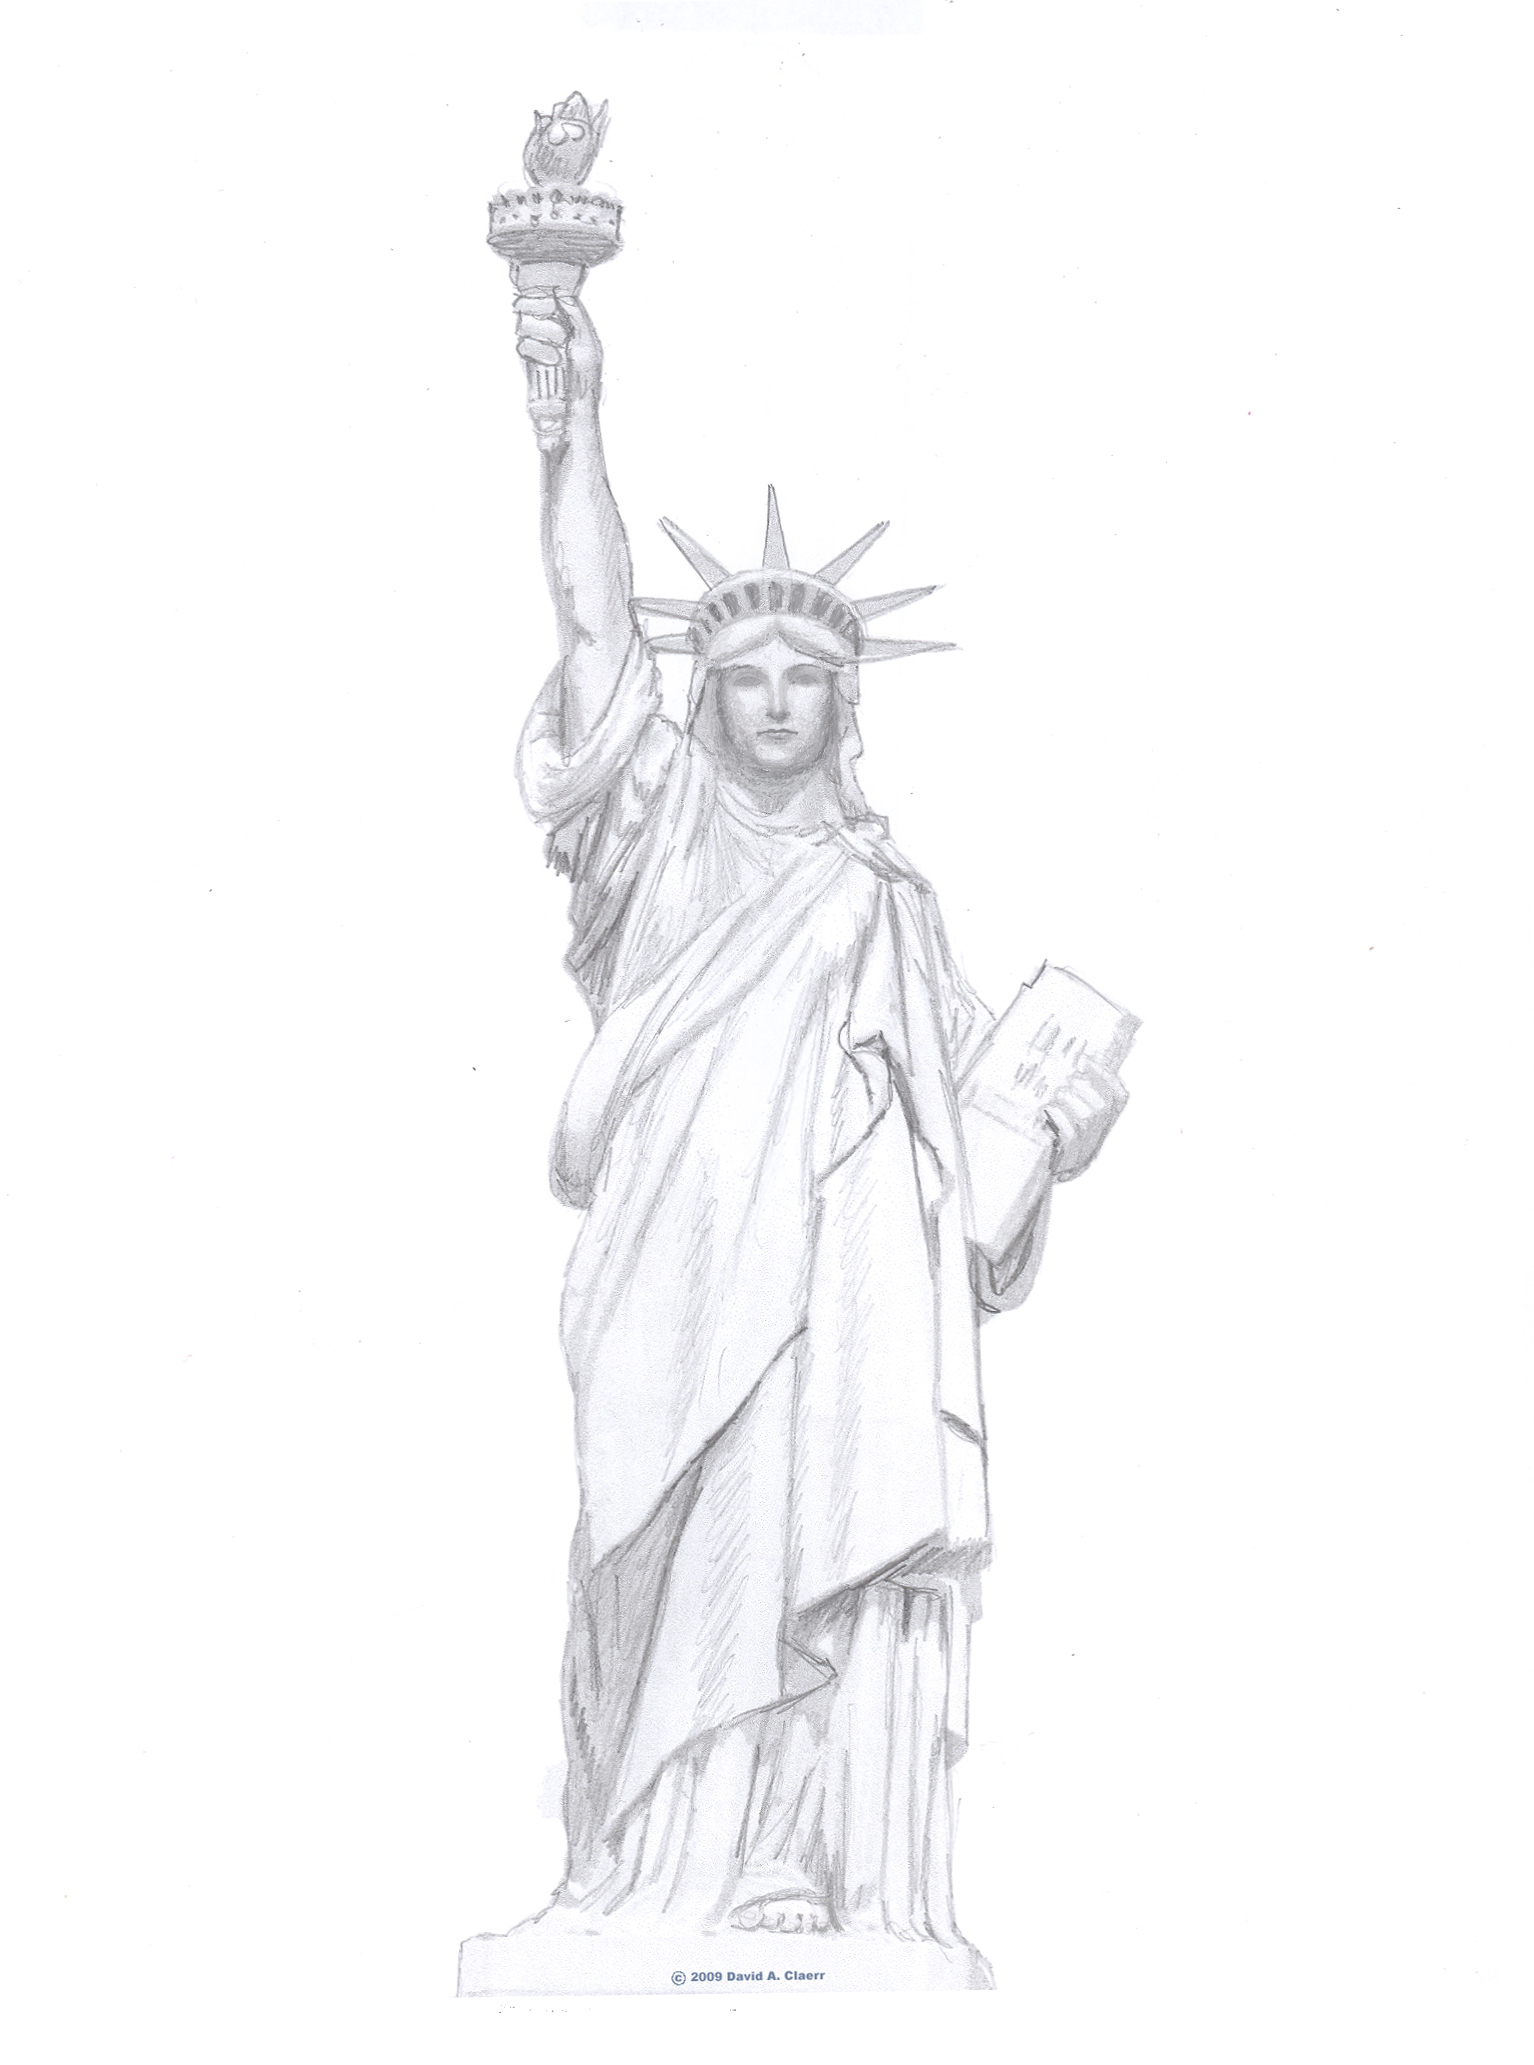 How To Draw The Statue Of Liberty Ehow Uk